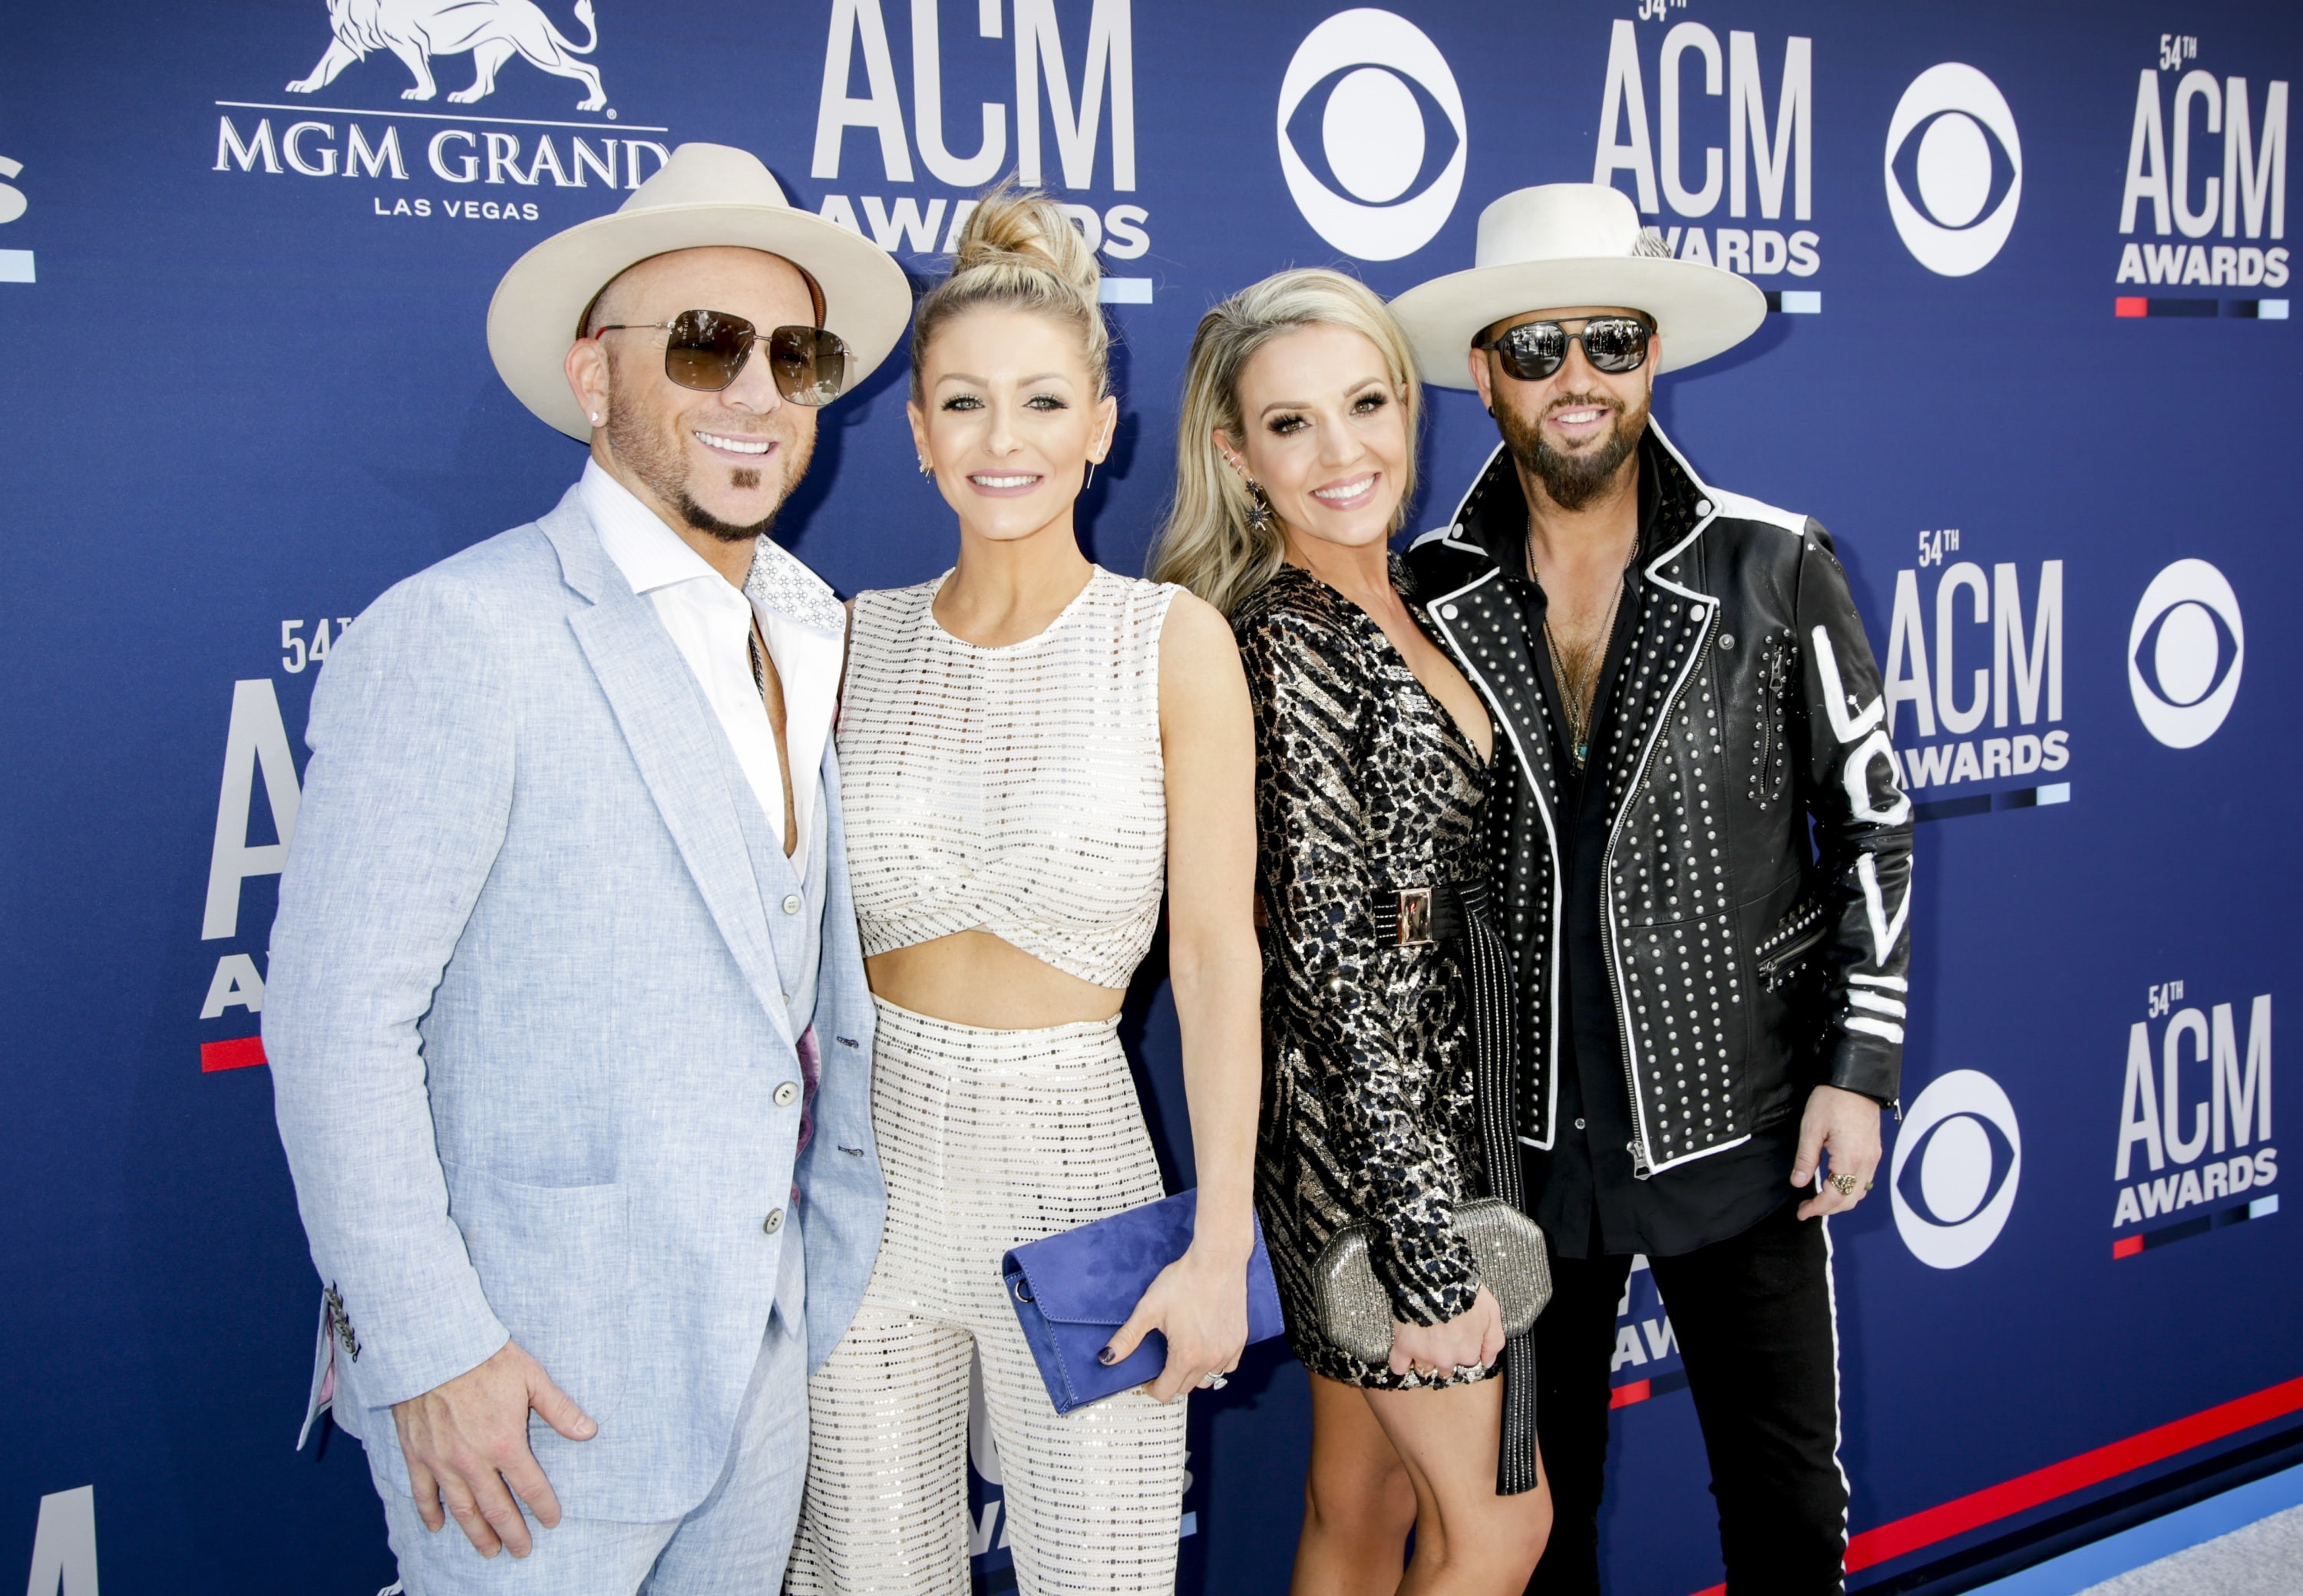 Country music duo Locash attends the 54TH ACADEMY OF COUNTRY MUSIC AWARDS, to broadcast LIVE from MGM Grand Garden Arena in Las Vegas Sunday, April 7, 2019 (8:00-11:00 PM, ET/delayed PT) on the CBS Television Network. Photo: Francis Specker/CBS ©2019 CBS Broadcasting, Inc. All Rights Reserved.